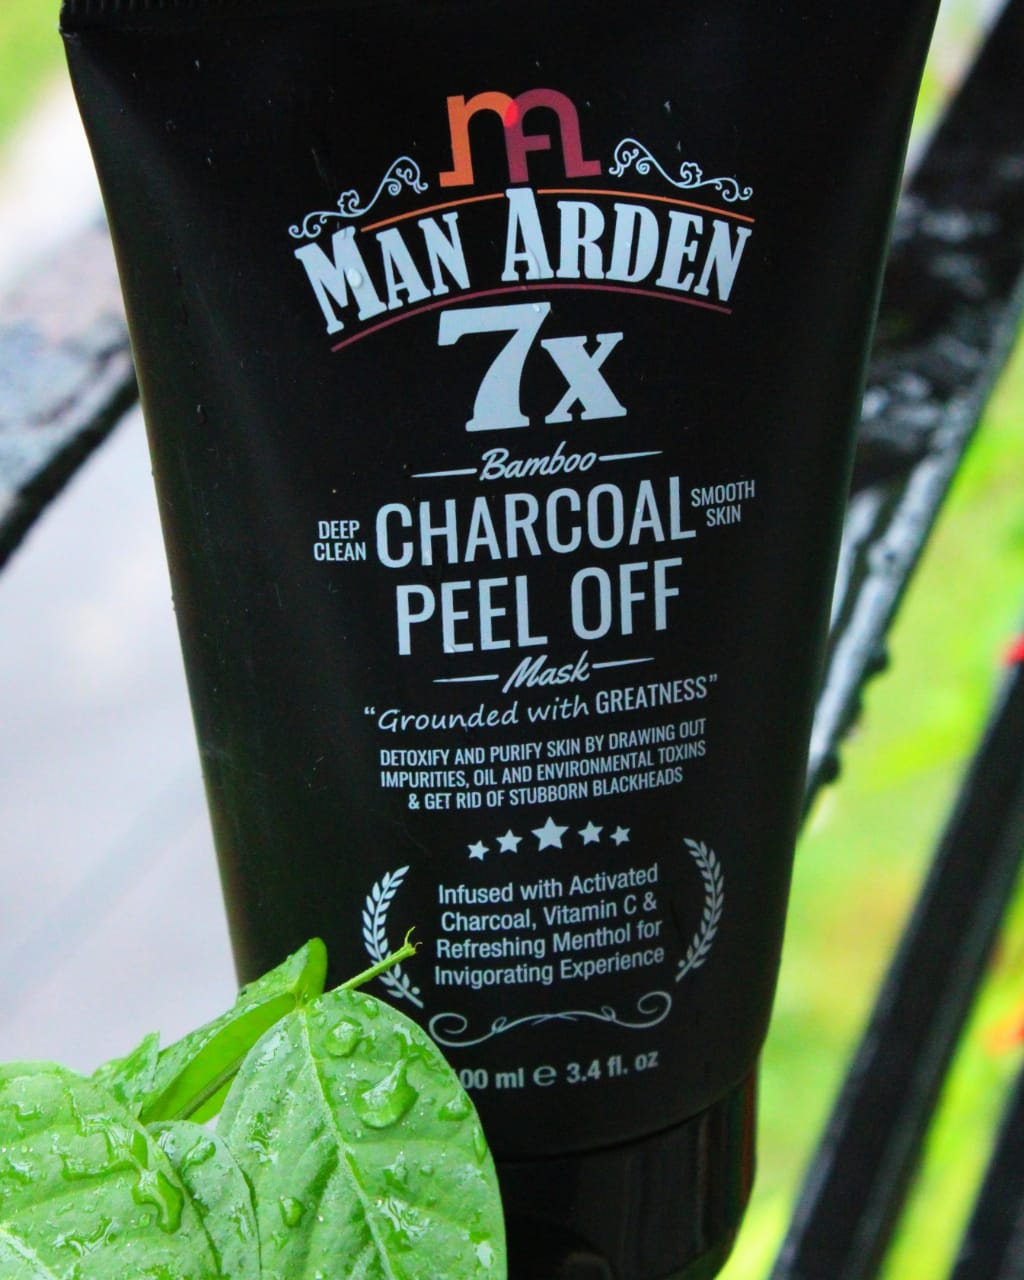 Man Arden 7X Activated Charcoal Peel Off Mask -Very nice-By sassy_supriyo